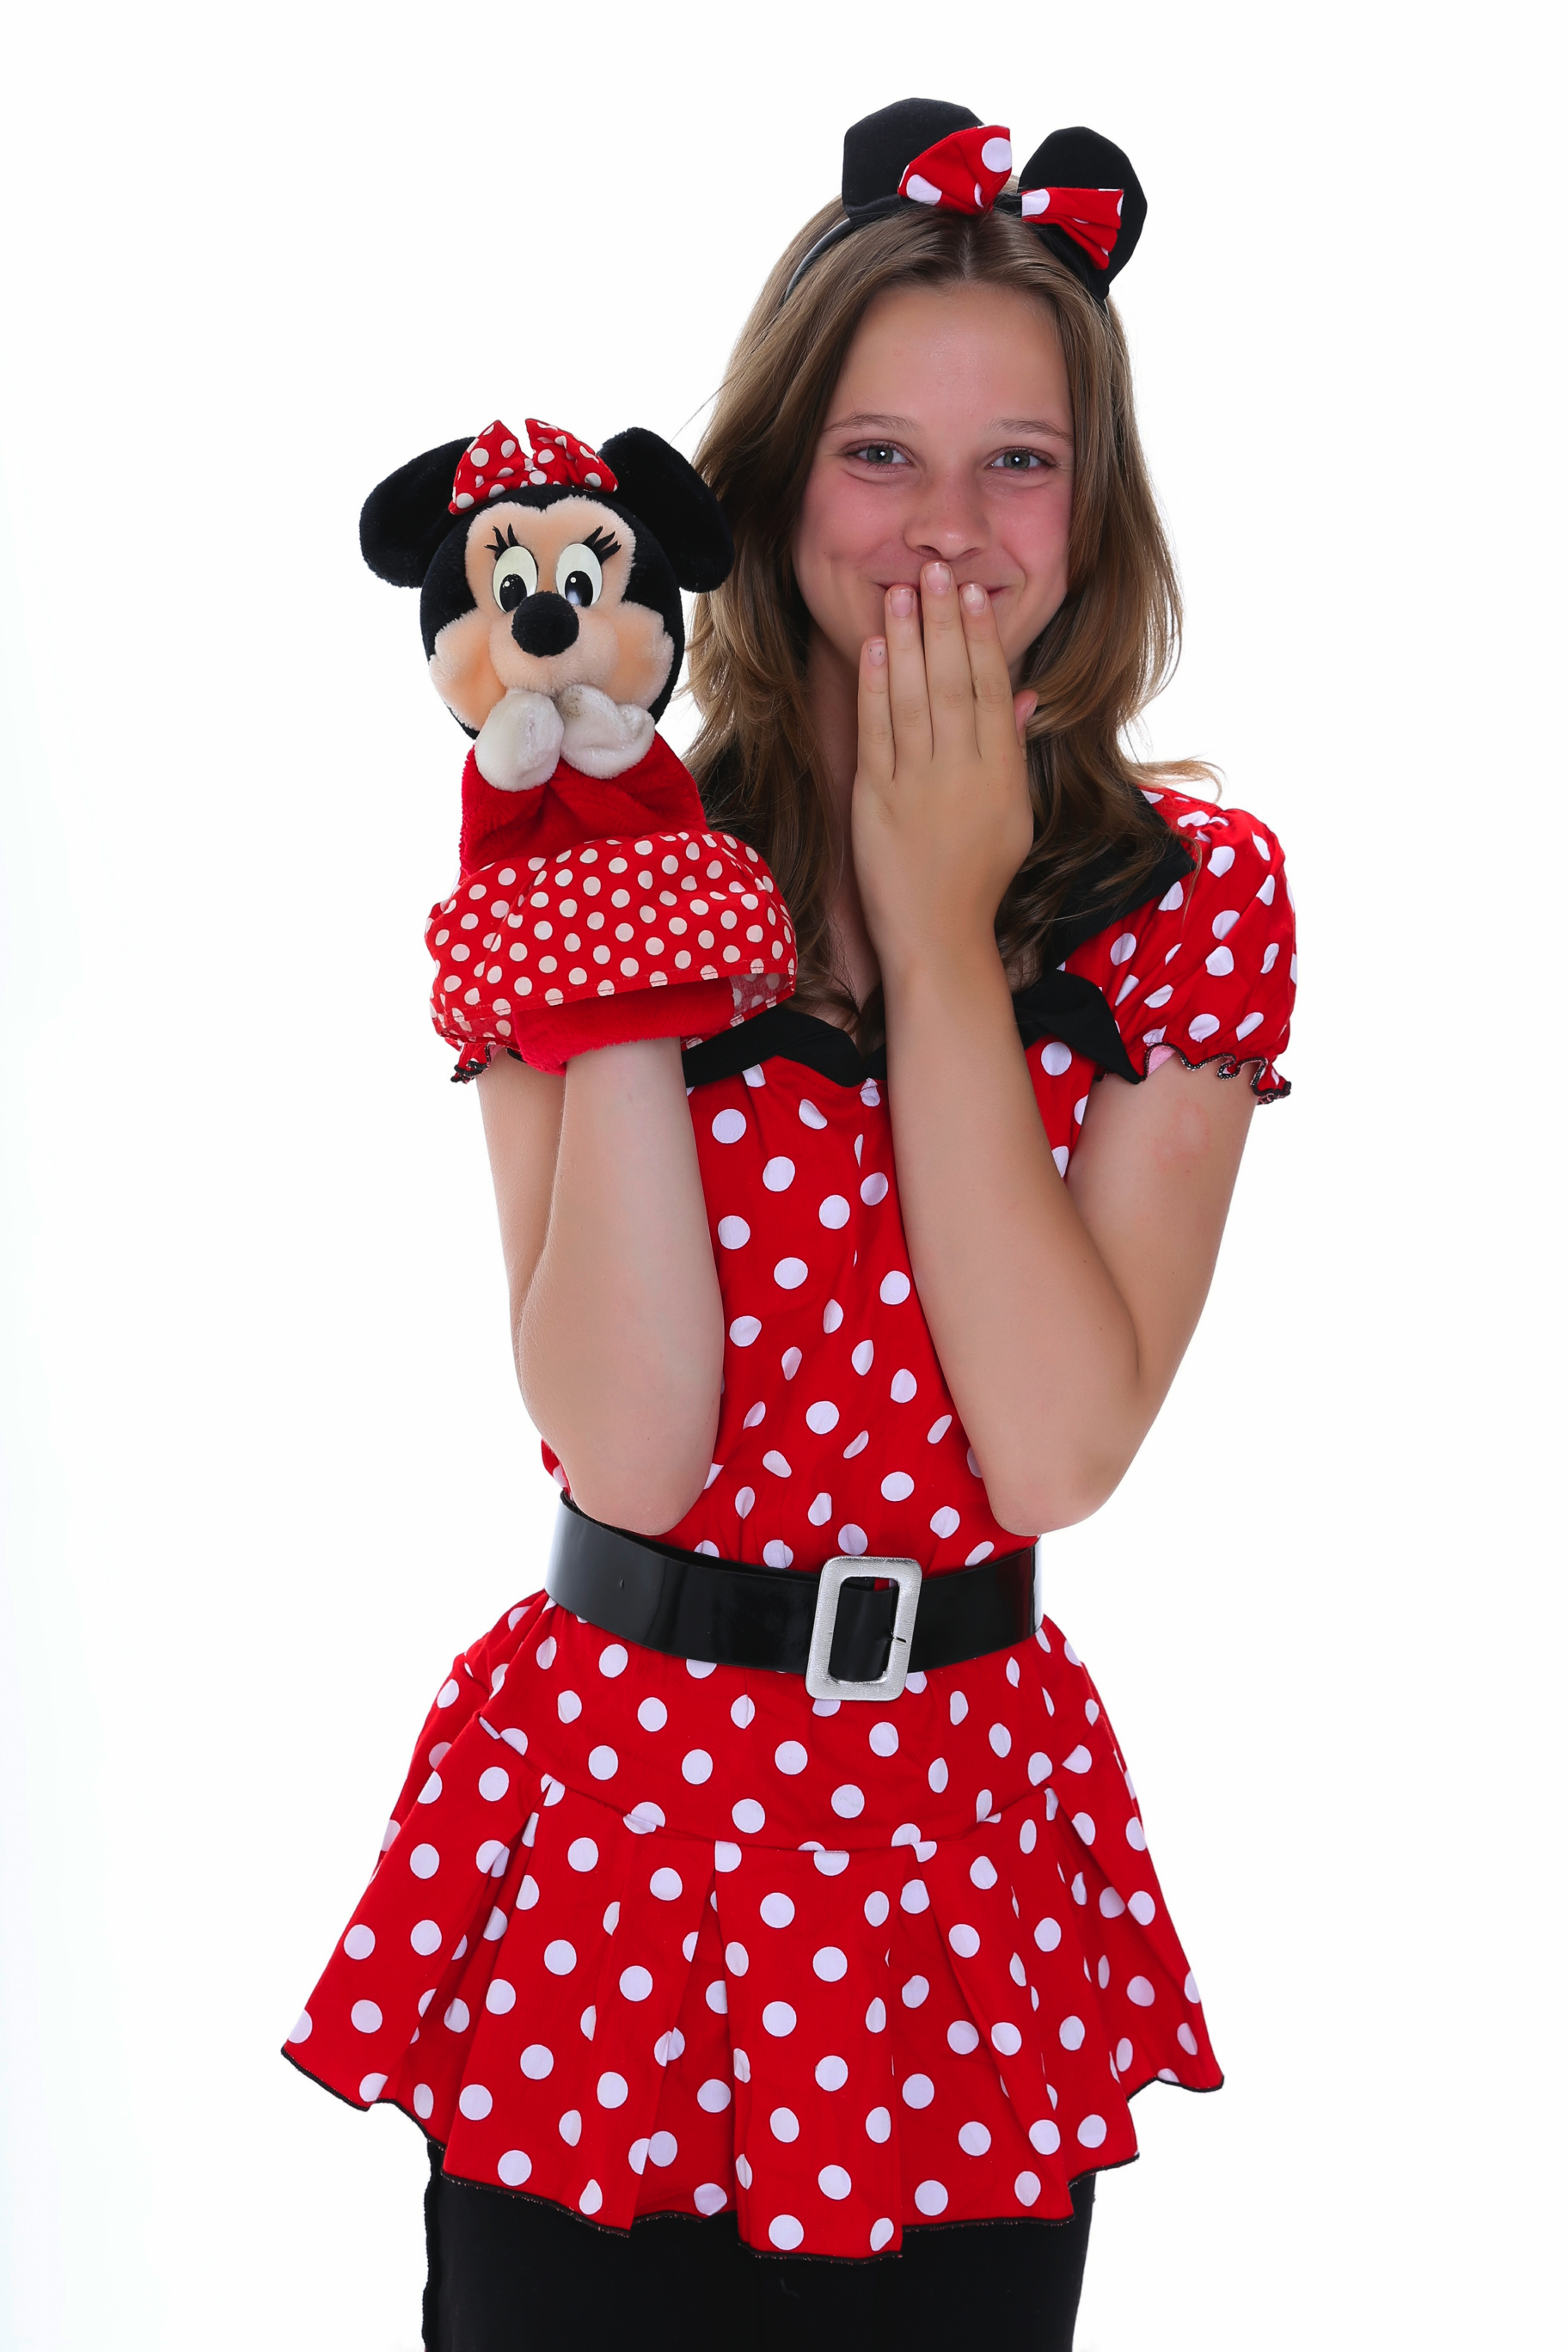 Alabama as Minnie 2014 copy.jpg